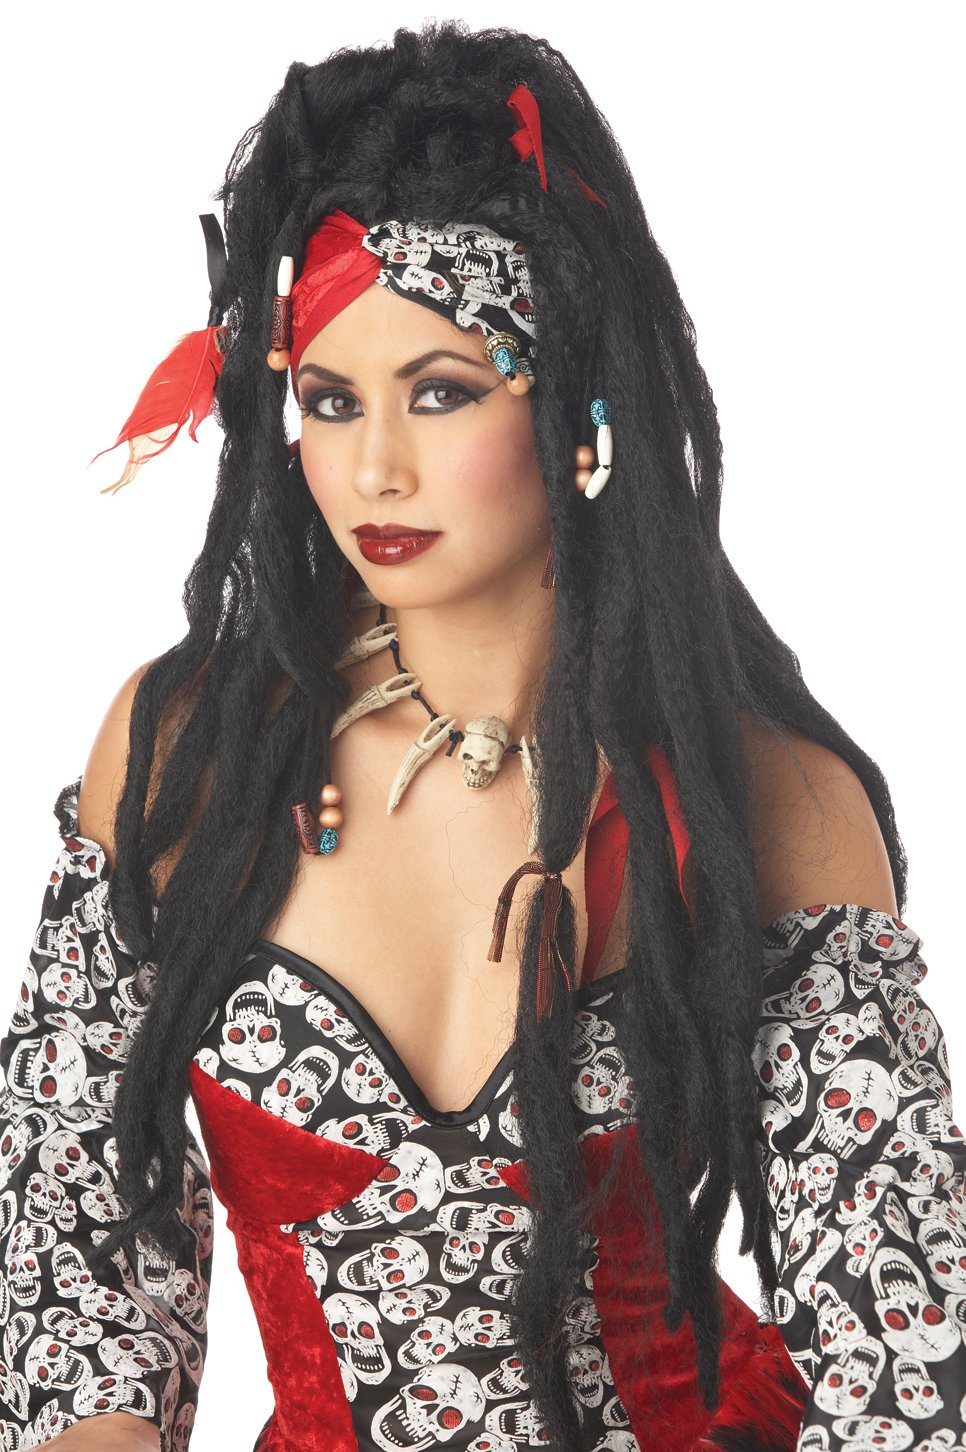 Voodoo Dreads Adult Costume Wig #70502